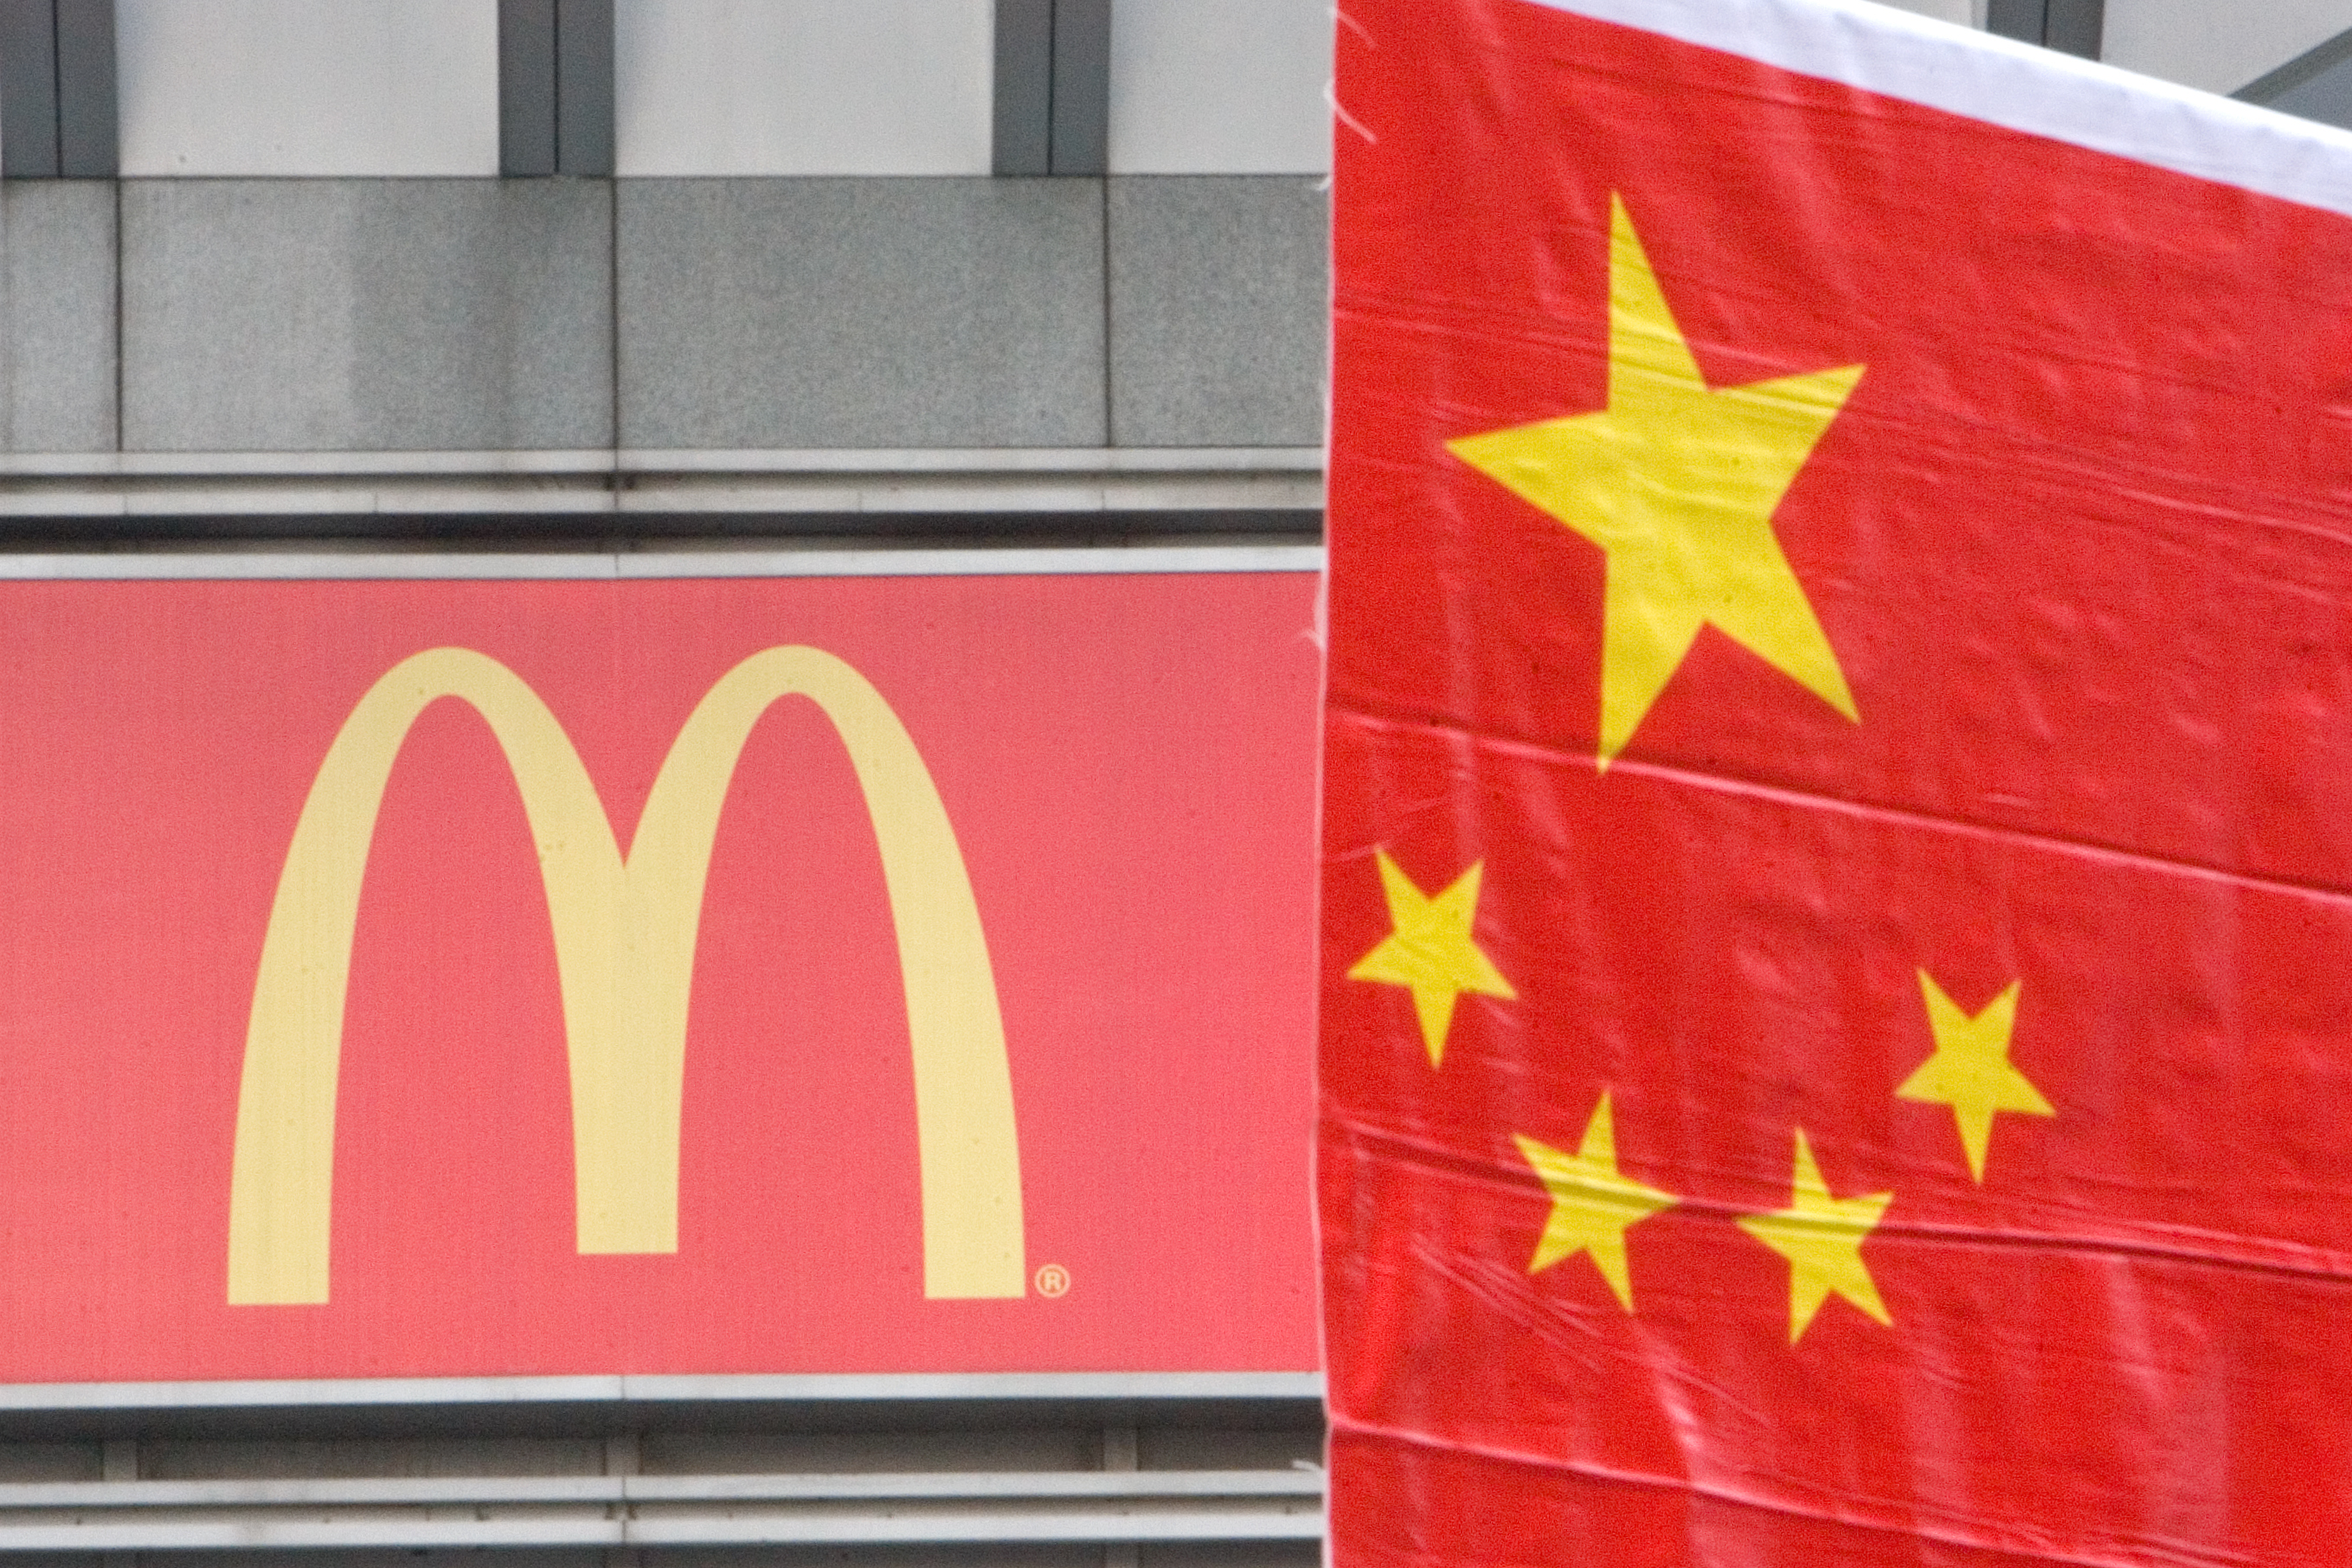 A Chinese flag is put up on Sept. 30, 2007, in Shanghai by a McDonald's sign for a celebration of China's National Day on Oct. 1